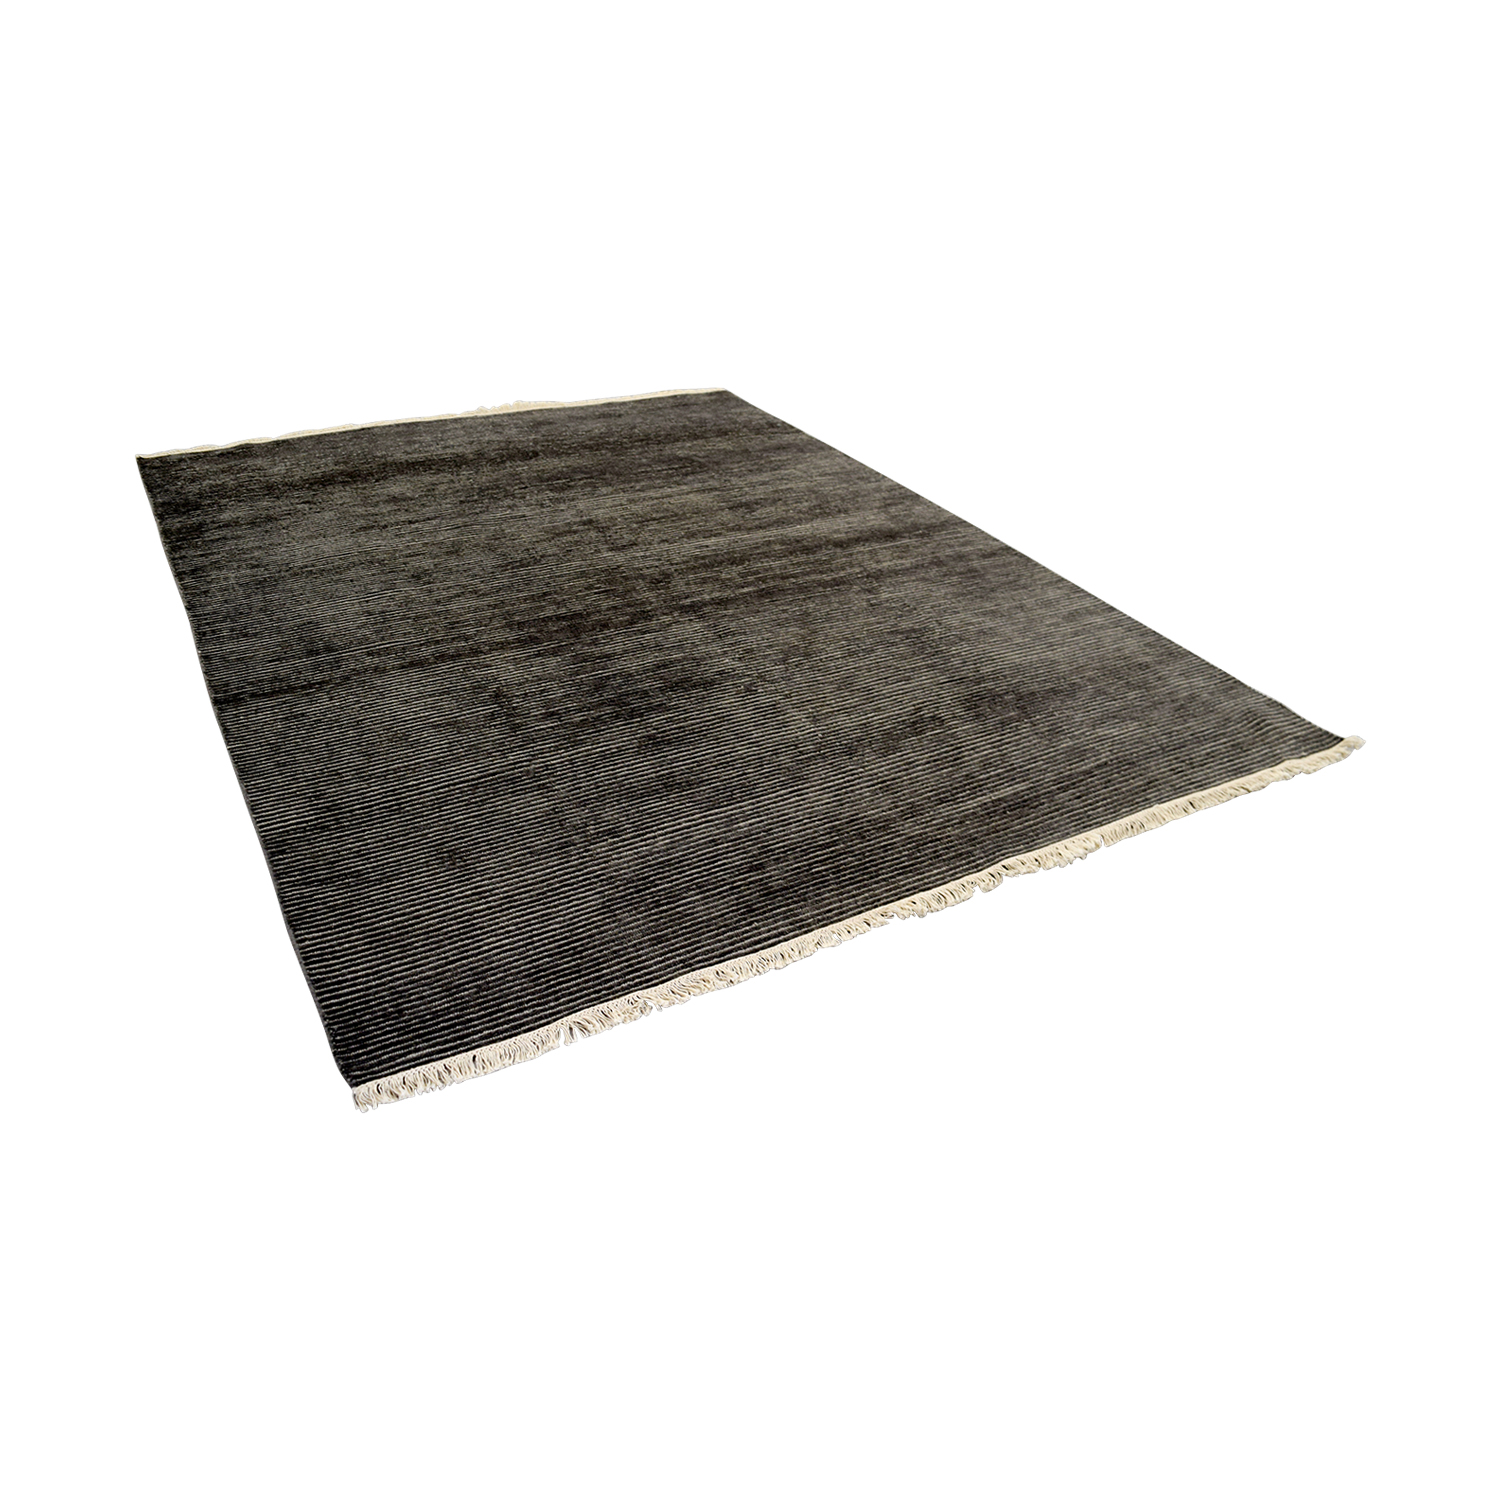 Obeetee Obeetee Talia Hand Knotted Charcoal Wool Rug for sale